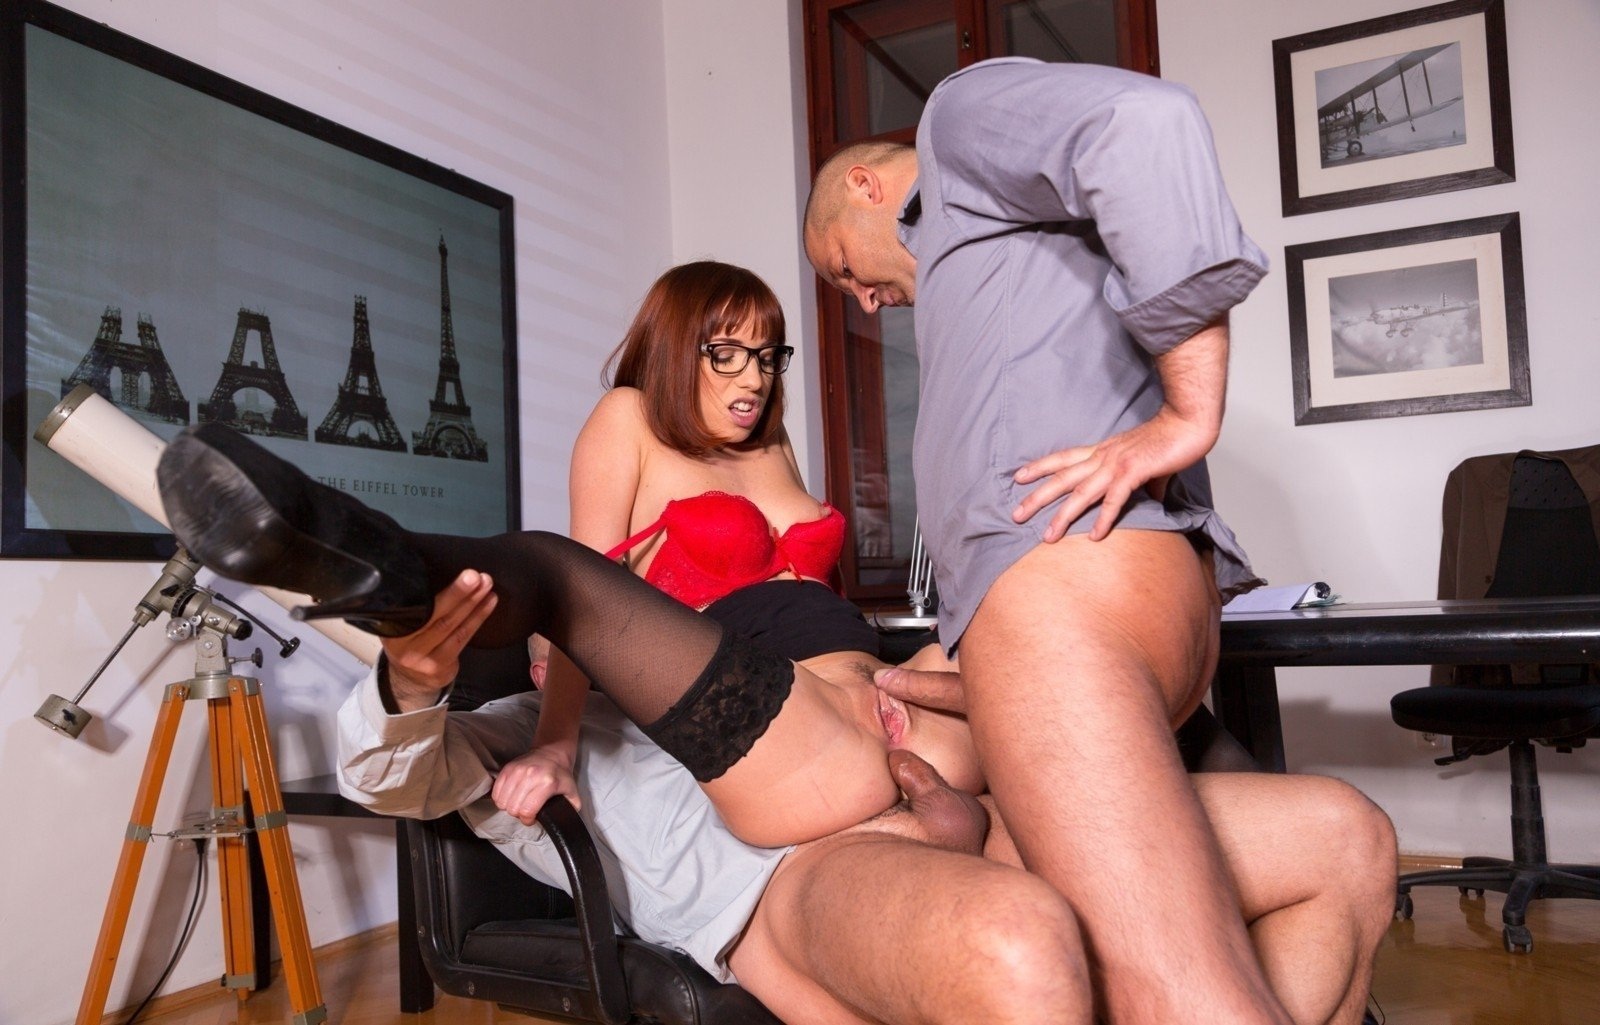 Secretary Seduces Her Boss And Gets Her Pussy Pounded